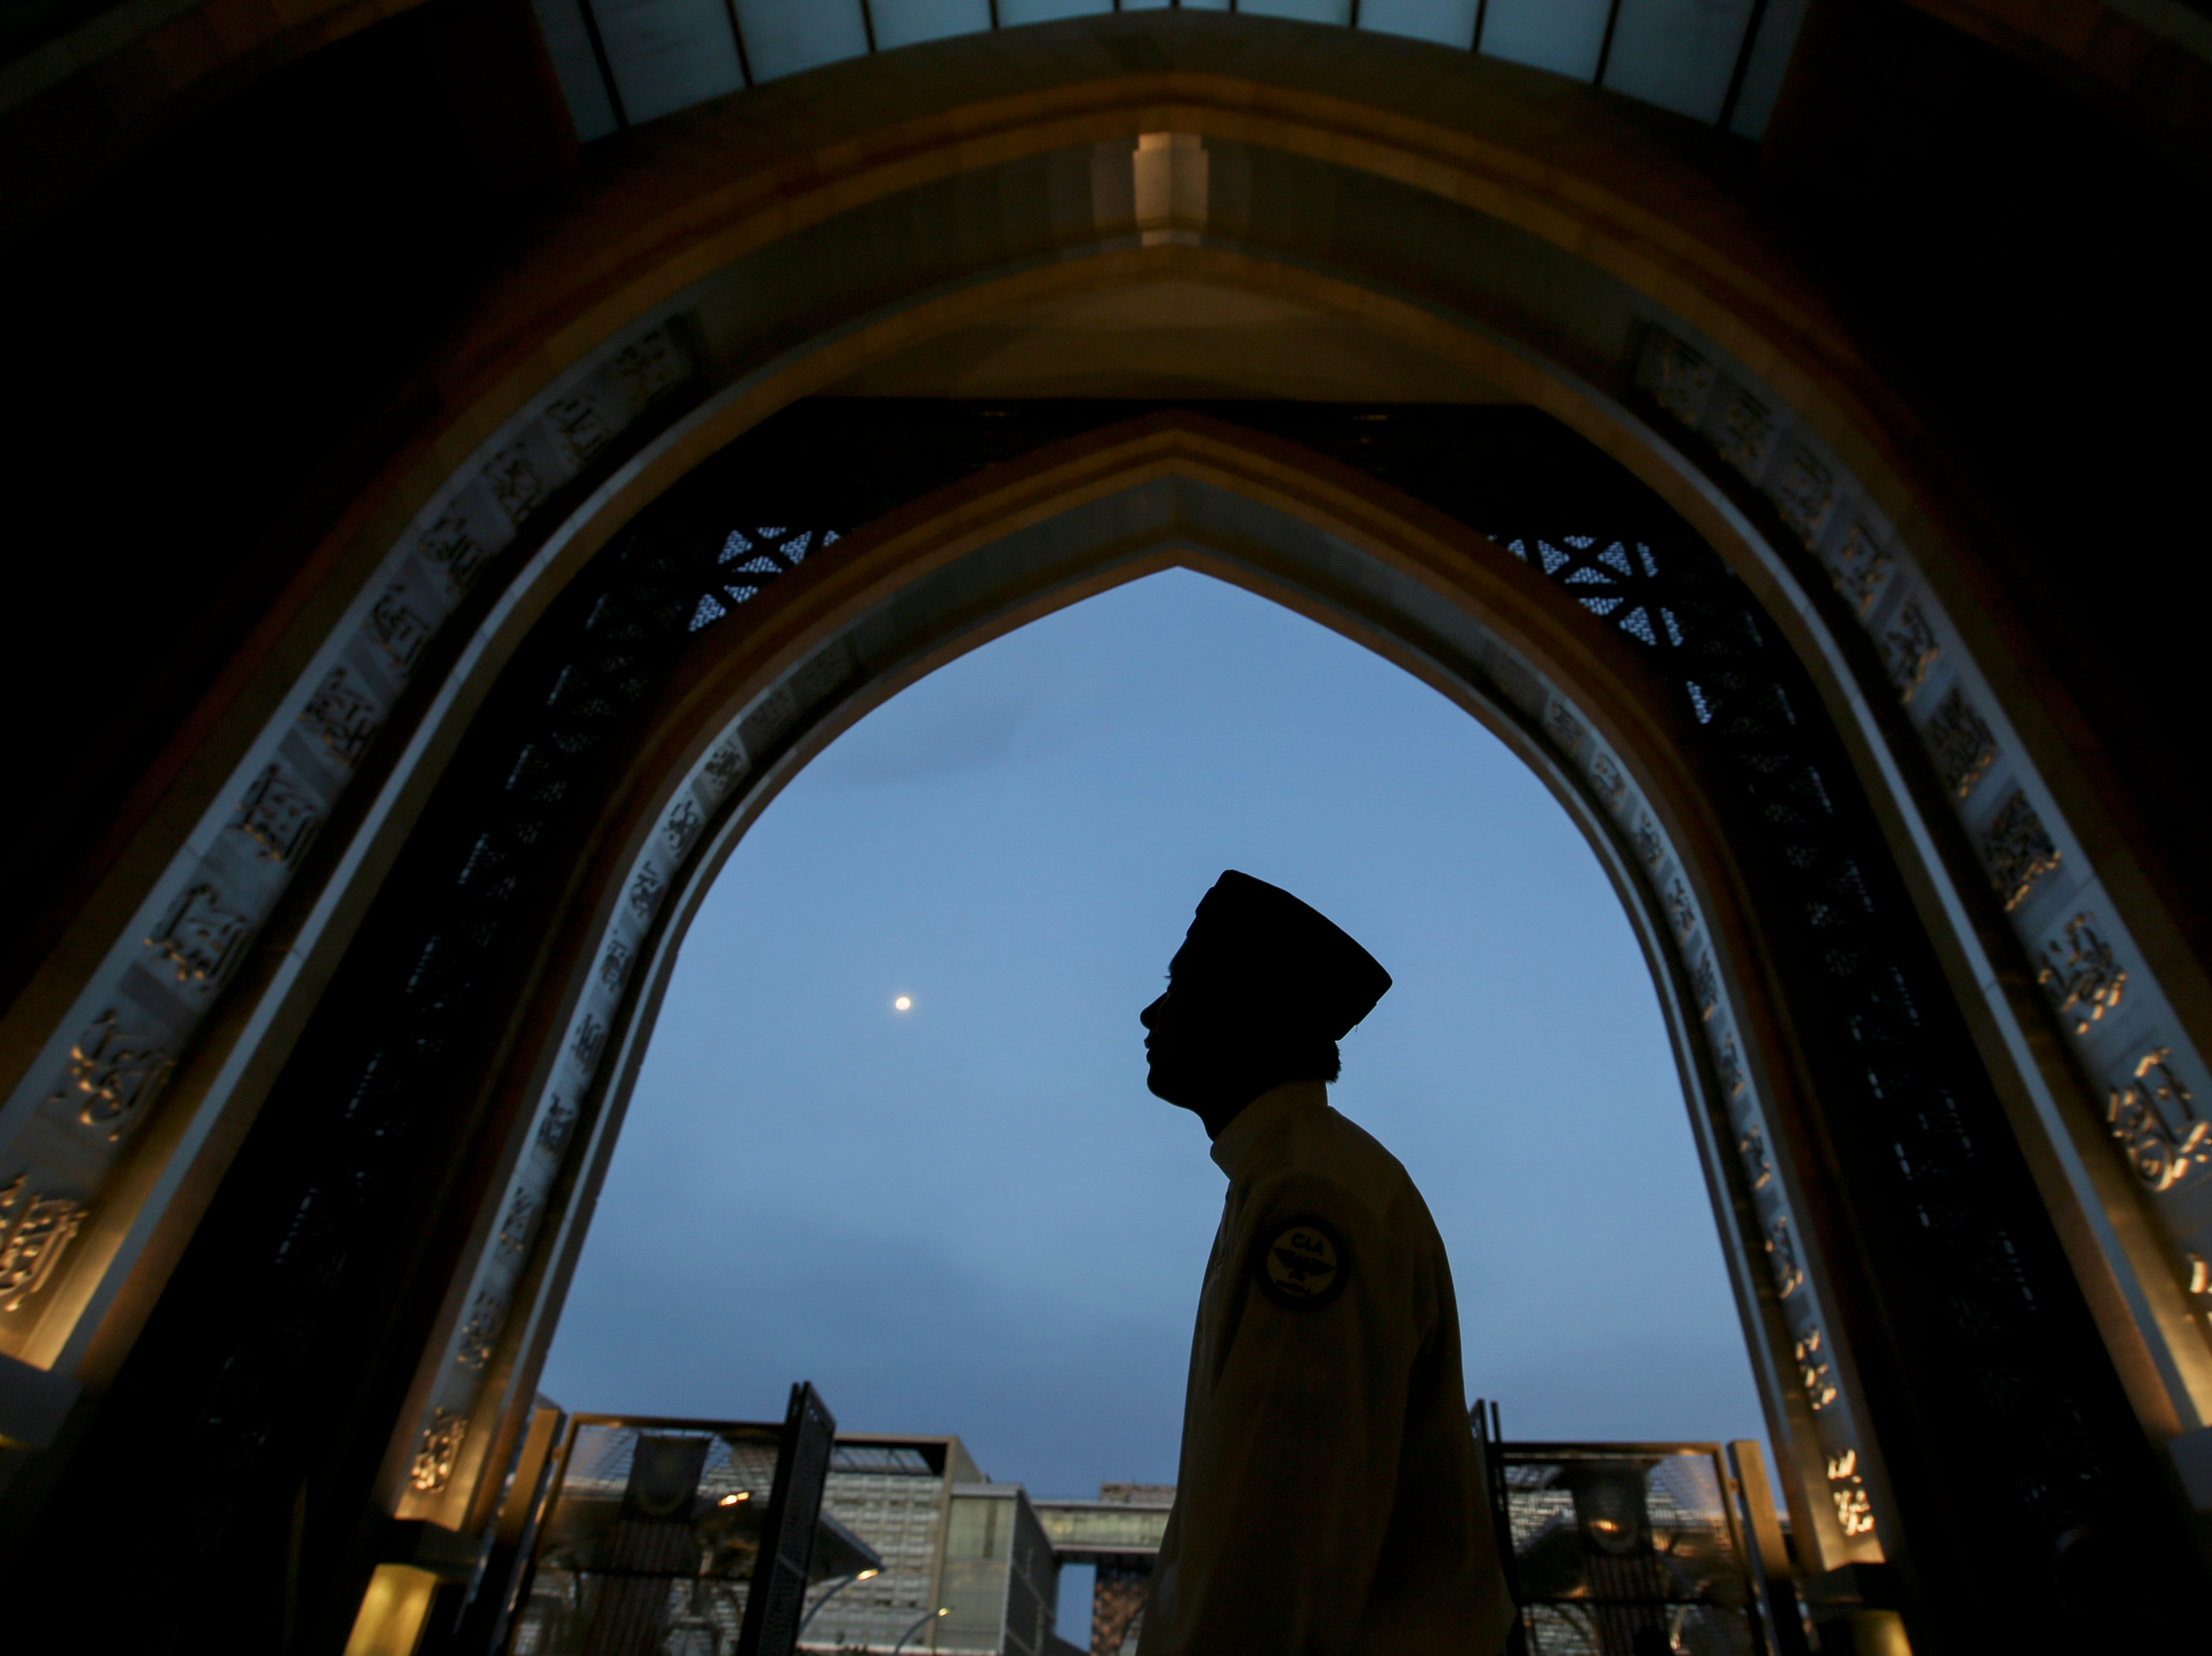 A silhouette of a Muslim man arrives at a mosque for Iftar during the holy Islamic month of Ramadan in Kuala Lumpur, Malaysia, Thursday, May 16, 2019.